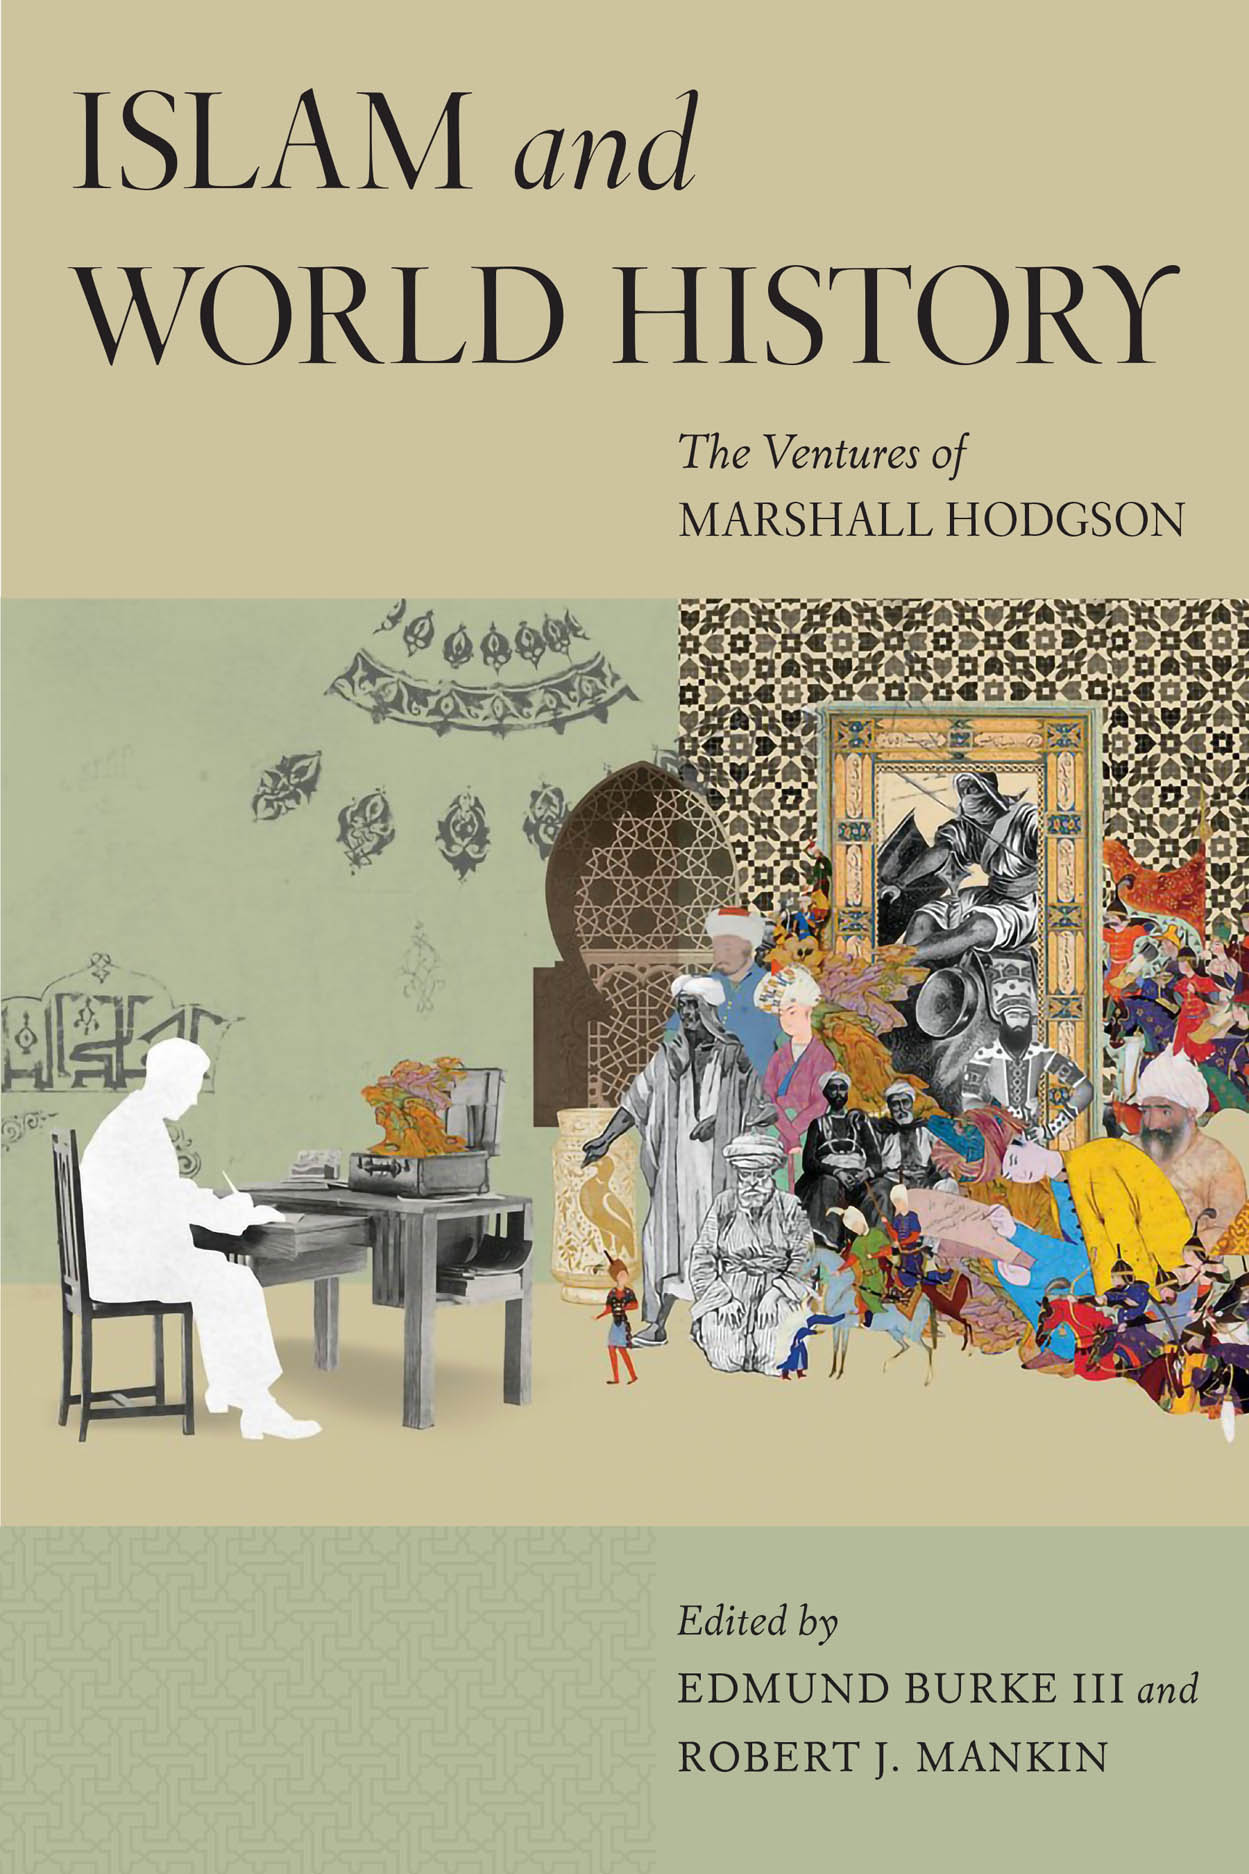 Islam and World History: The Ventures of Marshall Hodgson